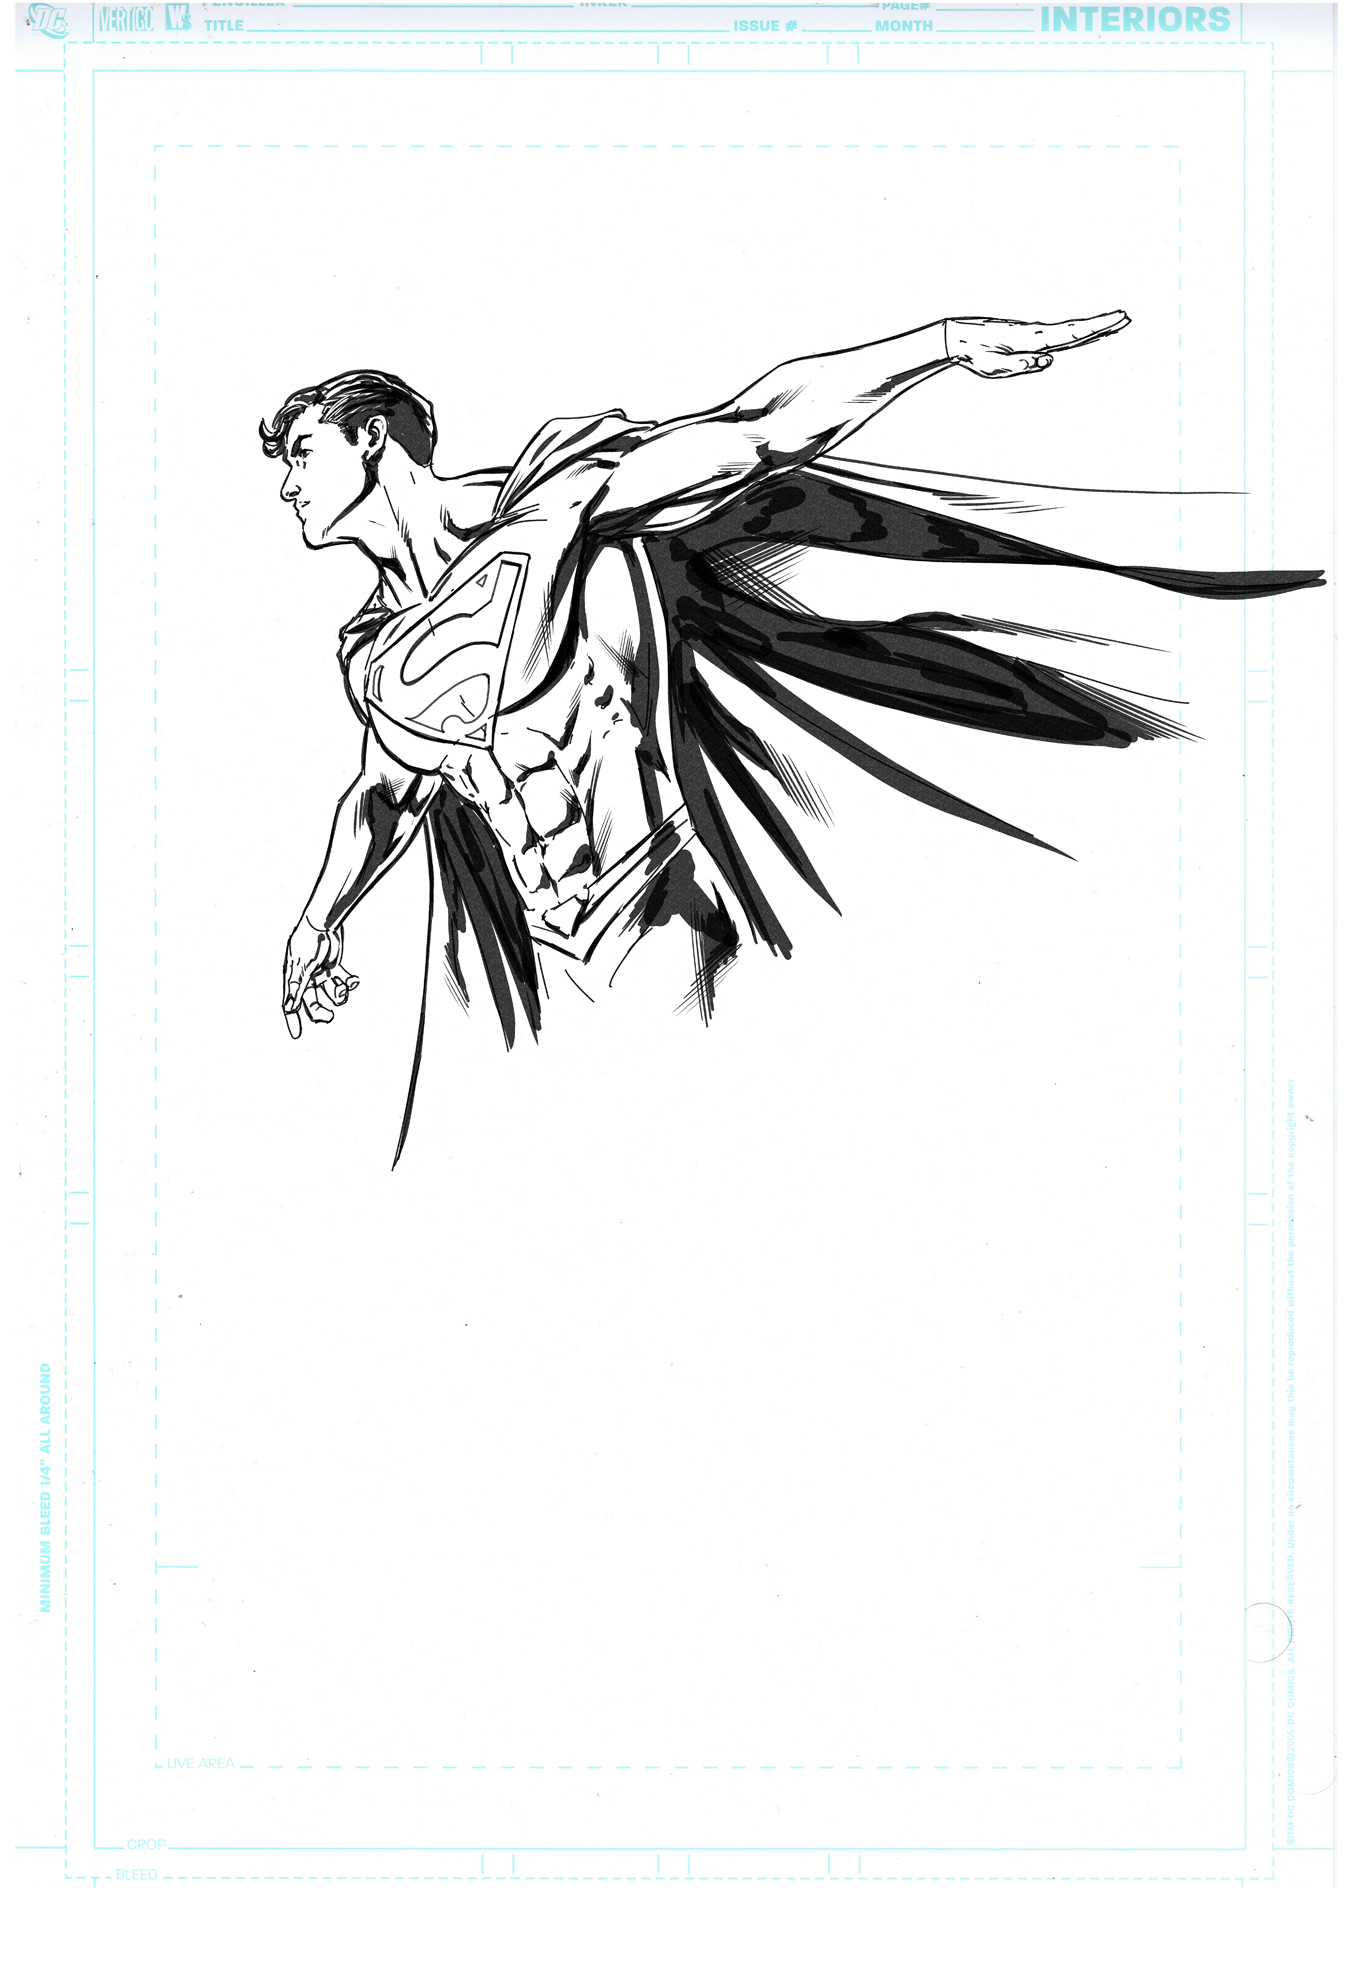 action comics cover 988 fig4.jpg